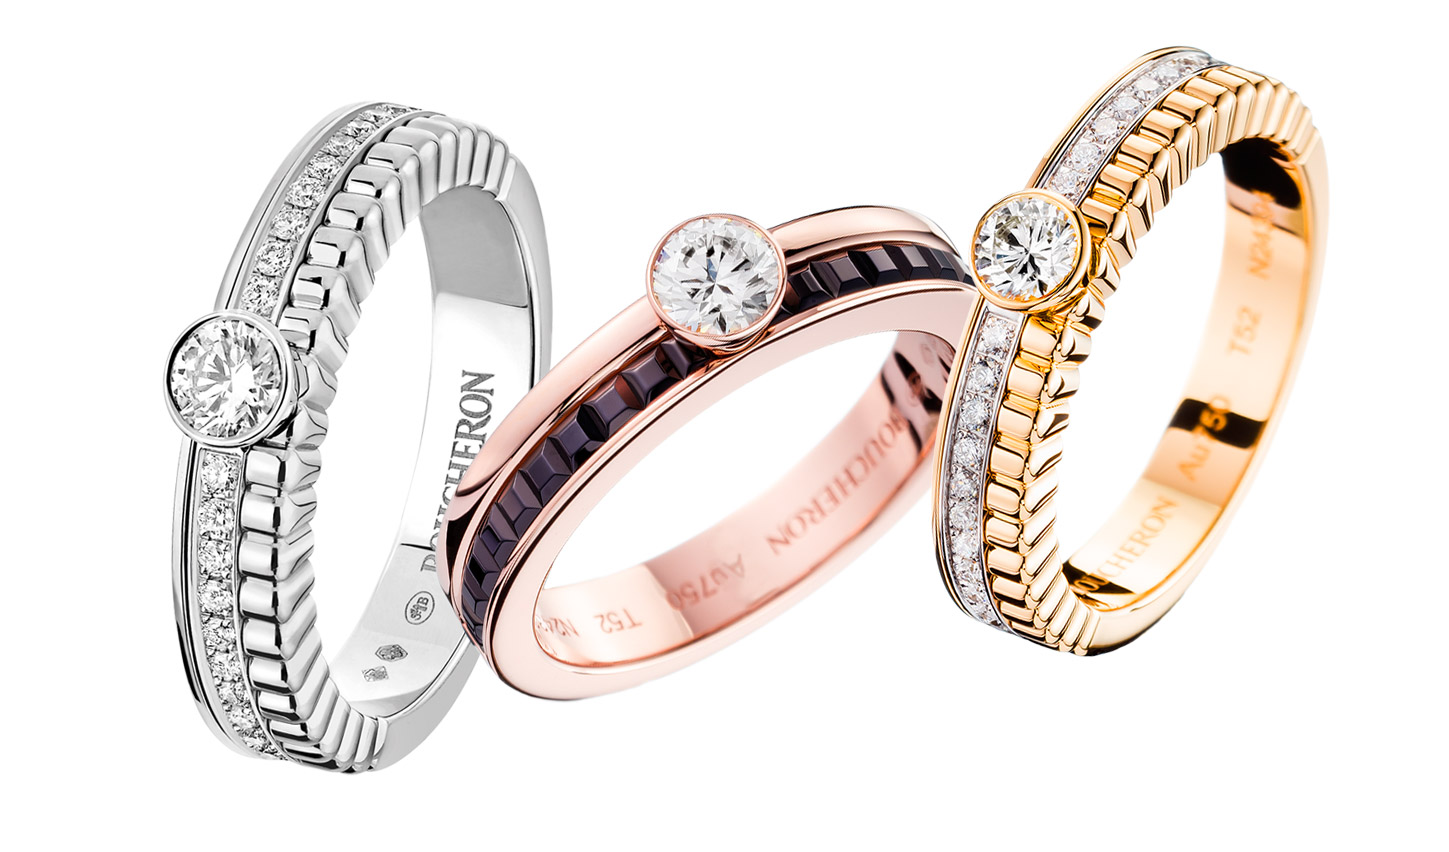 Boucheron 'Quatre Radiant' diamond engagement rings in white gold and yellow gold, with 'Quatre Classique' diamond engagement ring in rose gold with brown diamonds